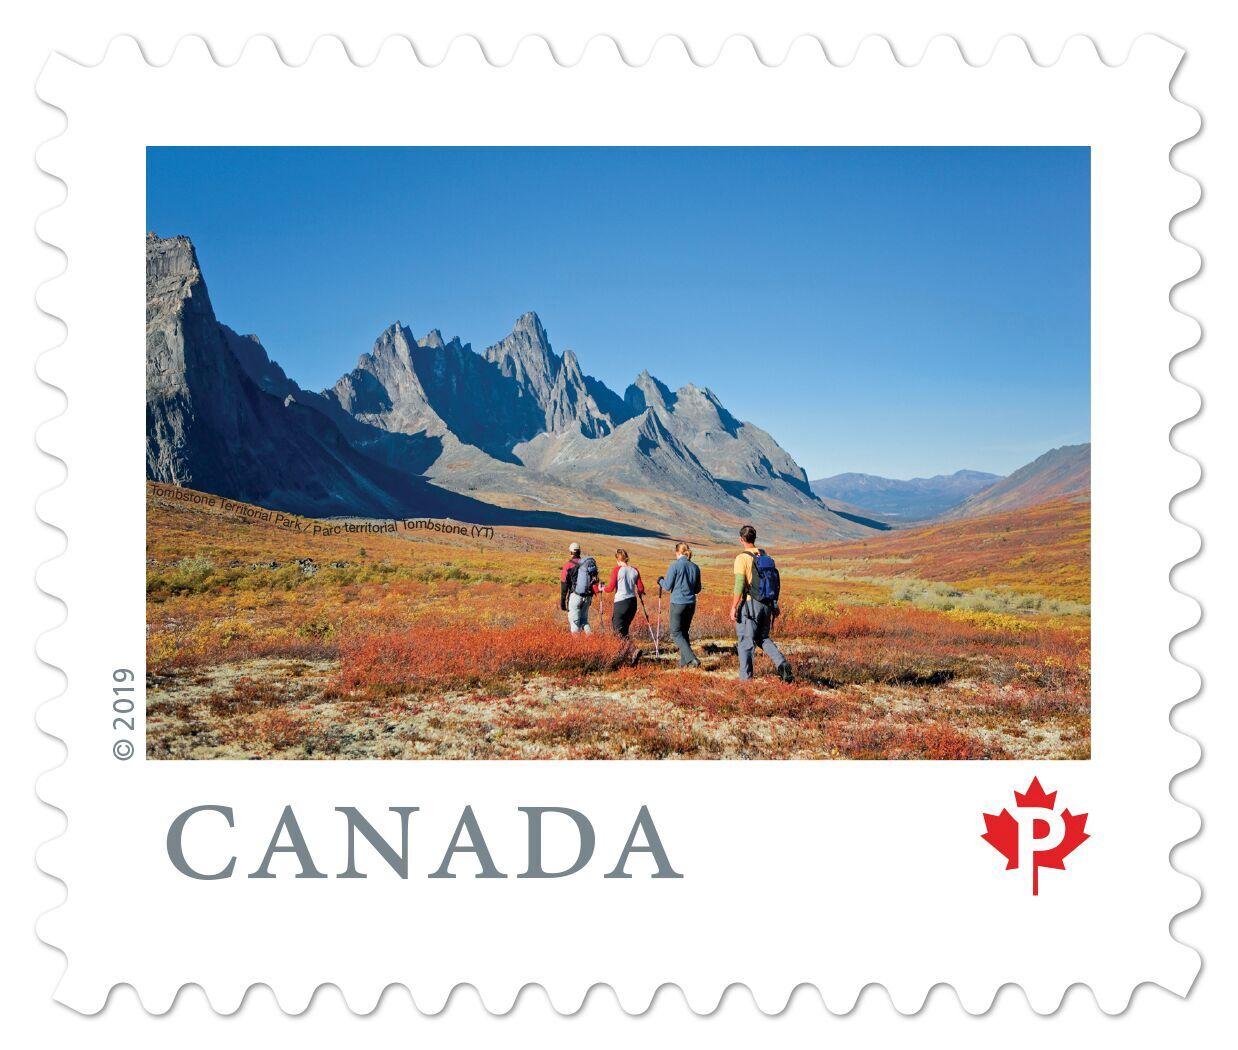 Canada - From Far and Wide (January 14, 2019) Tombstone Territorial Park, Yukon (domestic P rate from booklet of 10)